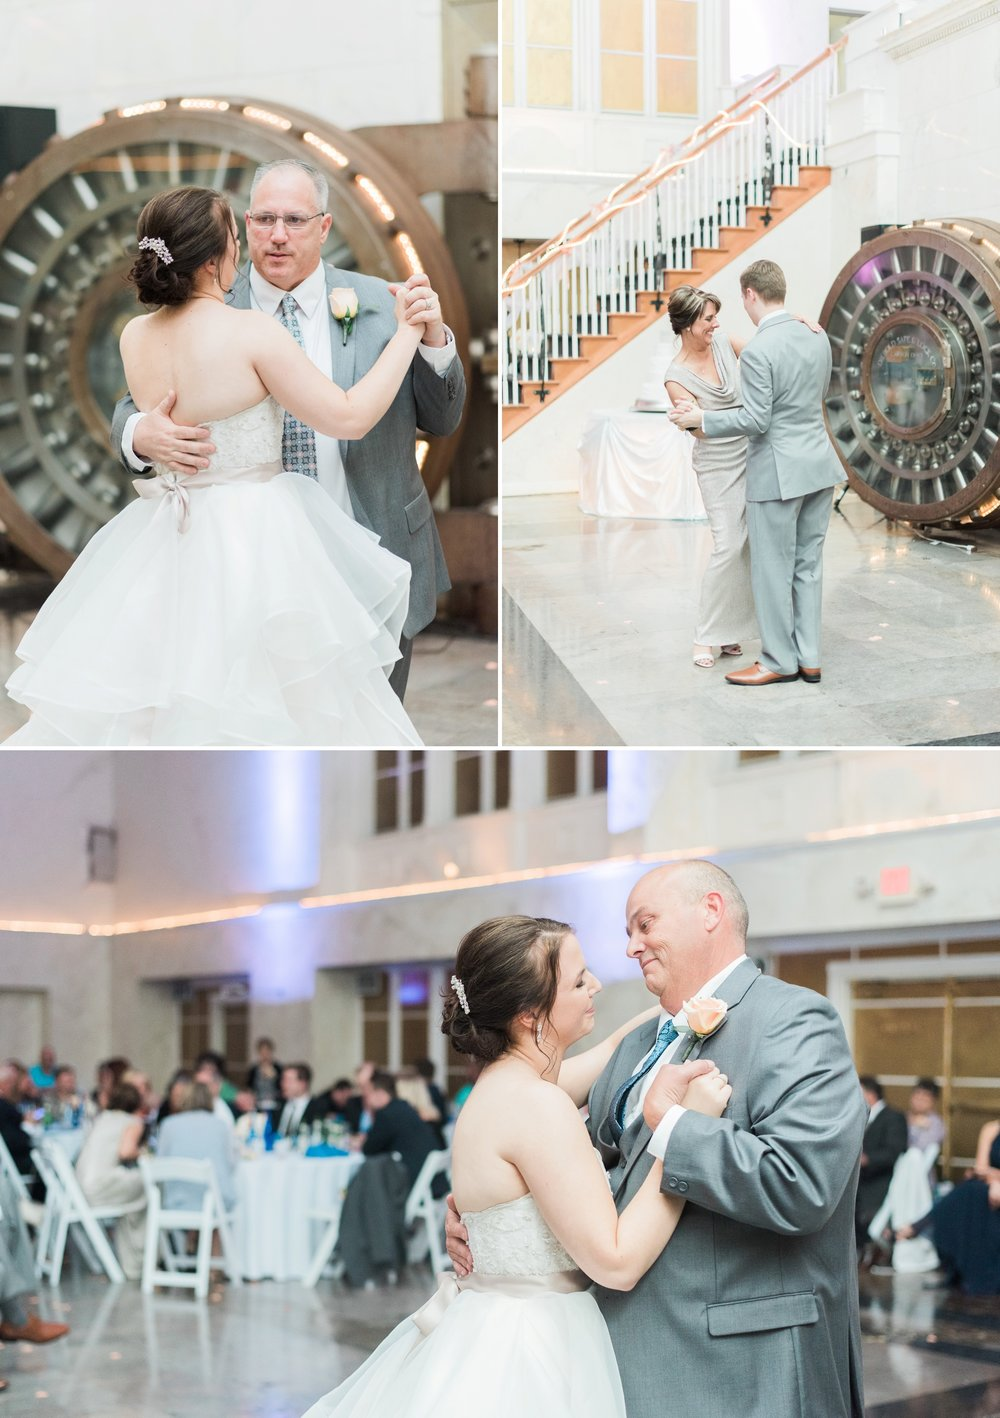 the-vault-columbus-ohio-wedding-emily-chris_0040.jpg